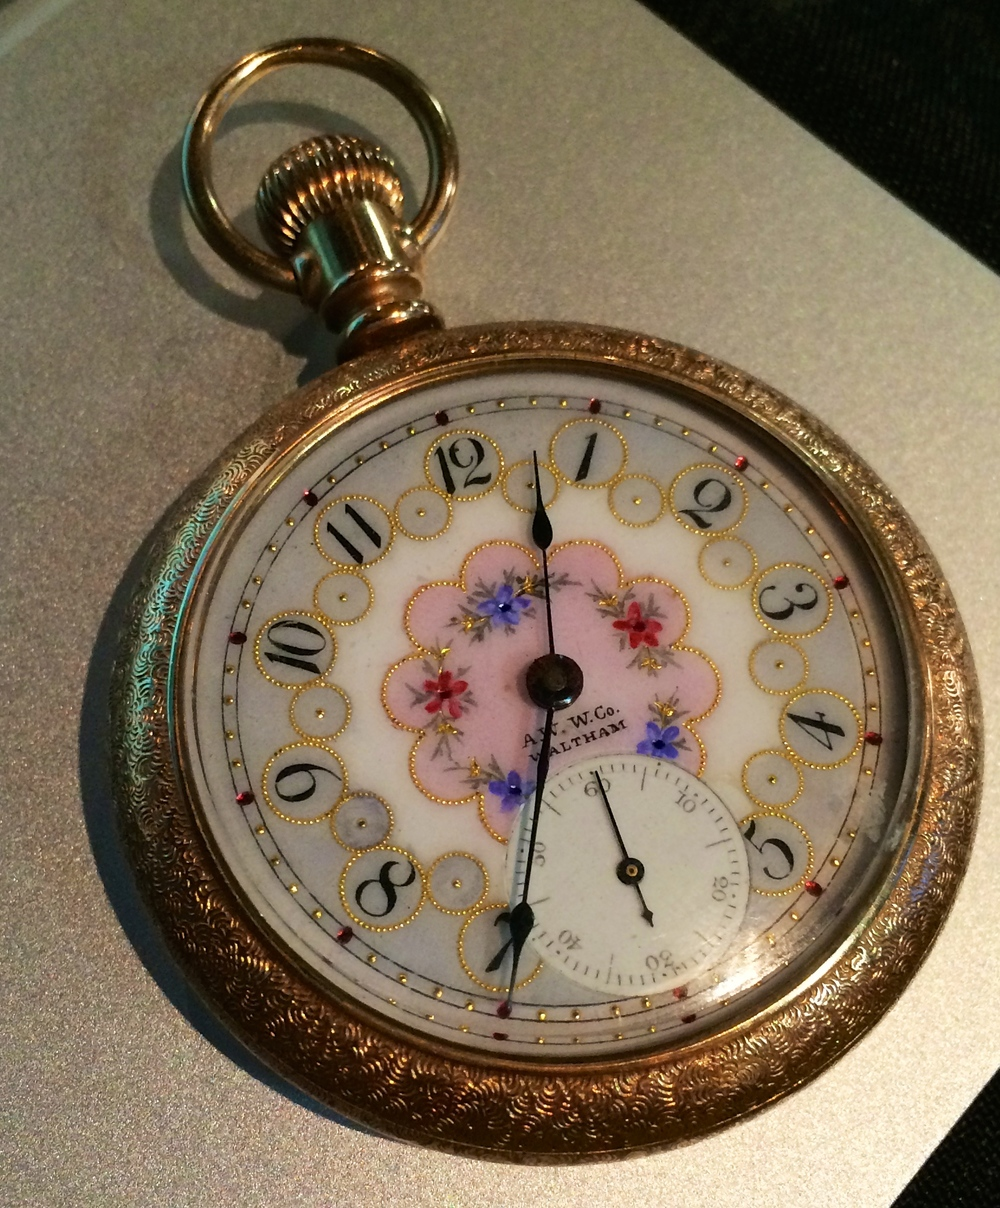 Turn of the century pocket watch with a beautifully detailed face.